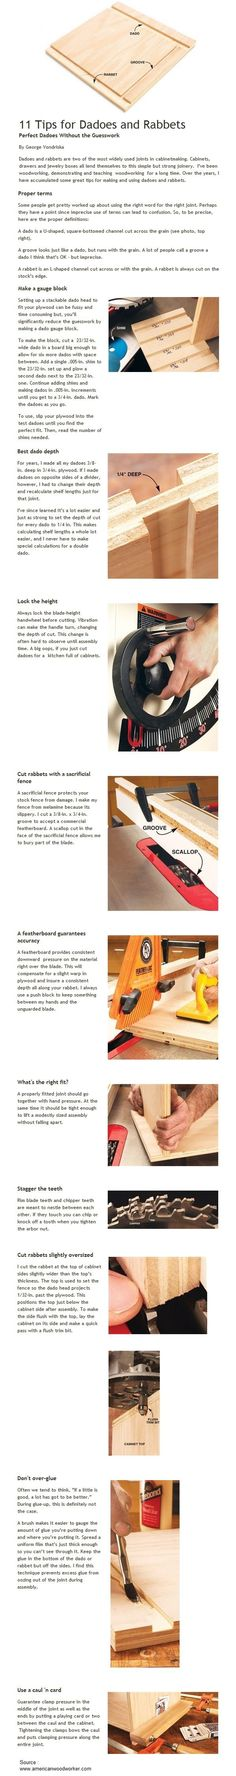 11 Tips for Dadoes and Rabbets, but really only 11 is new to me but so helpful #woodworkingtools